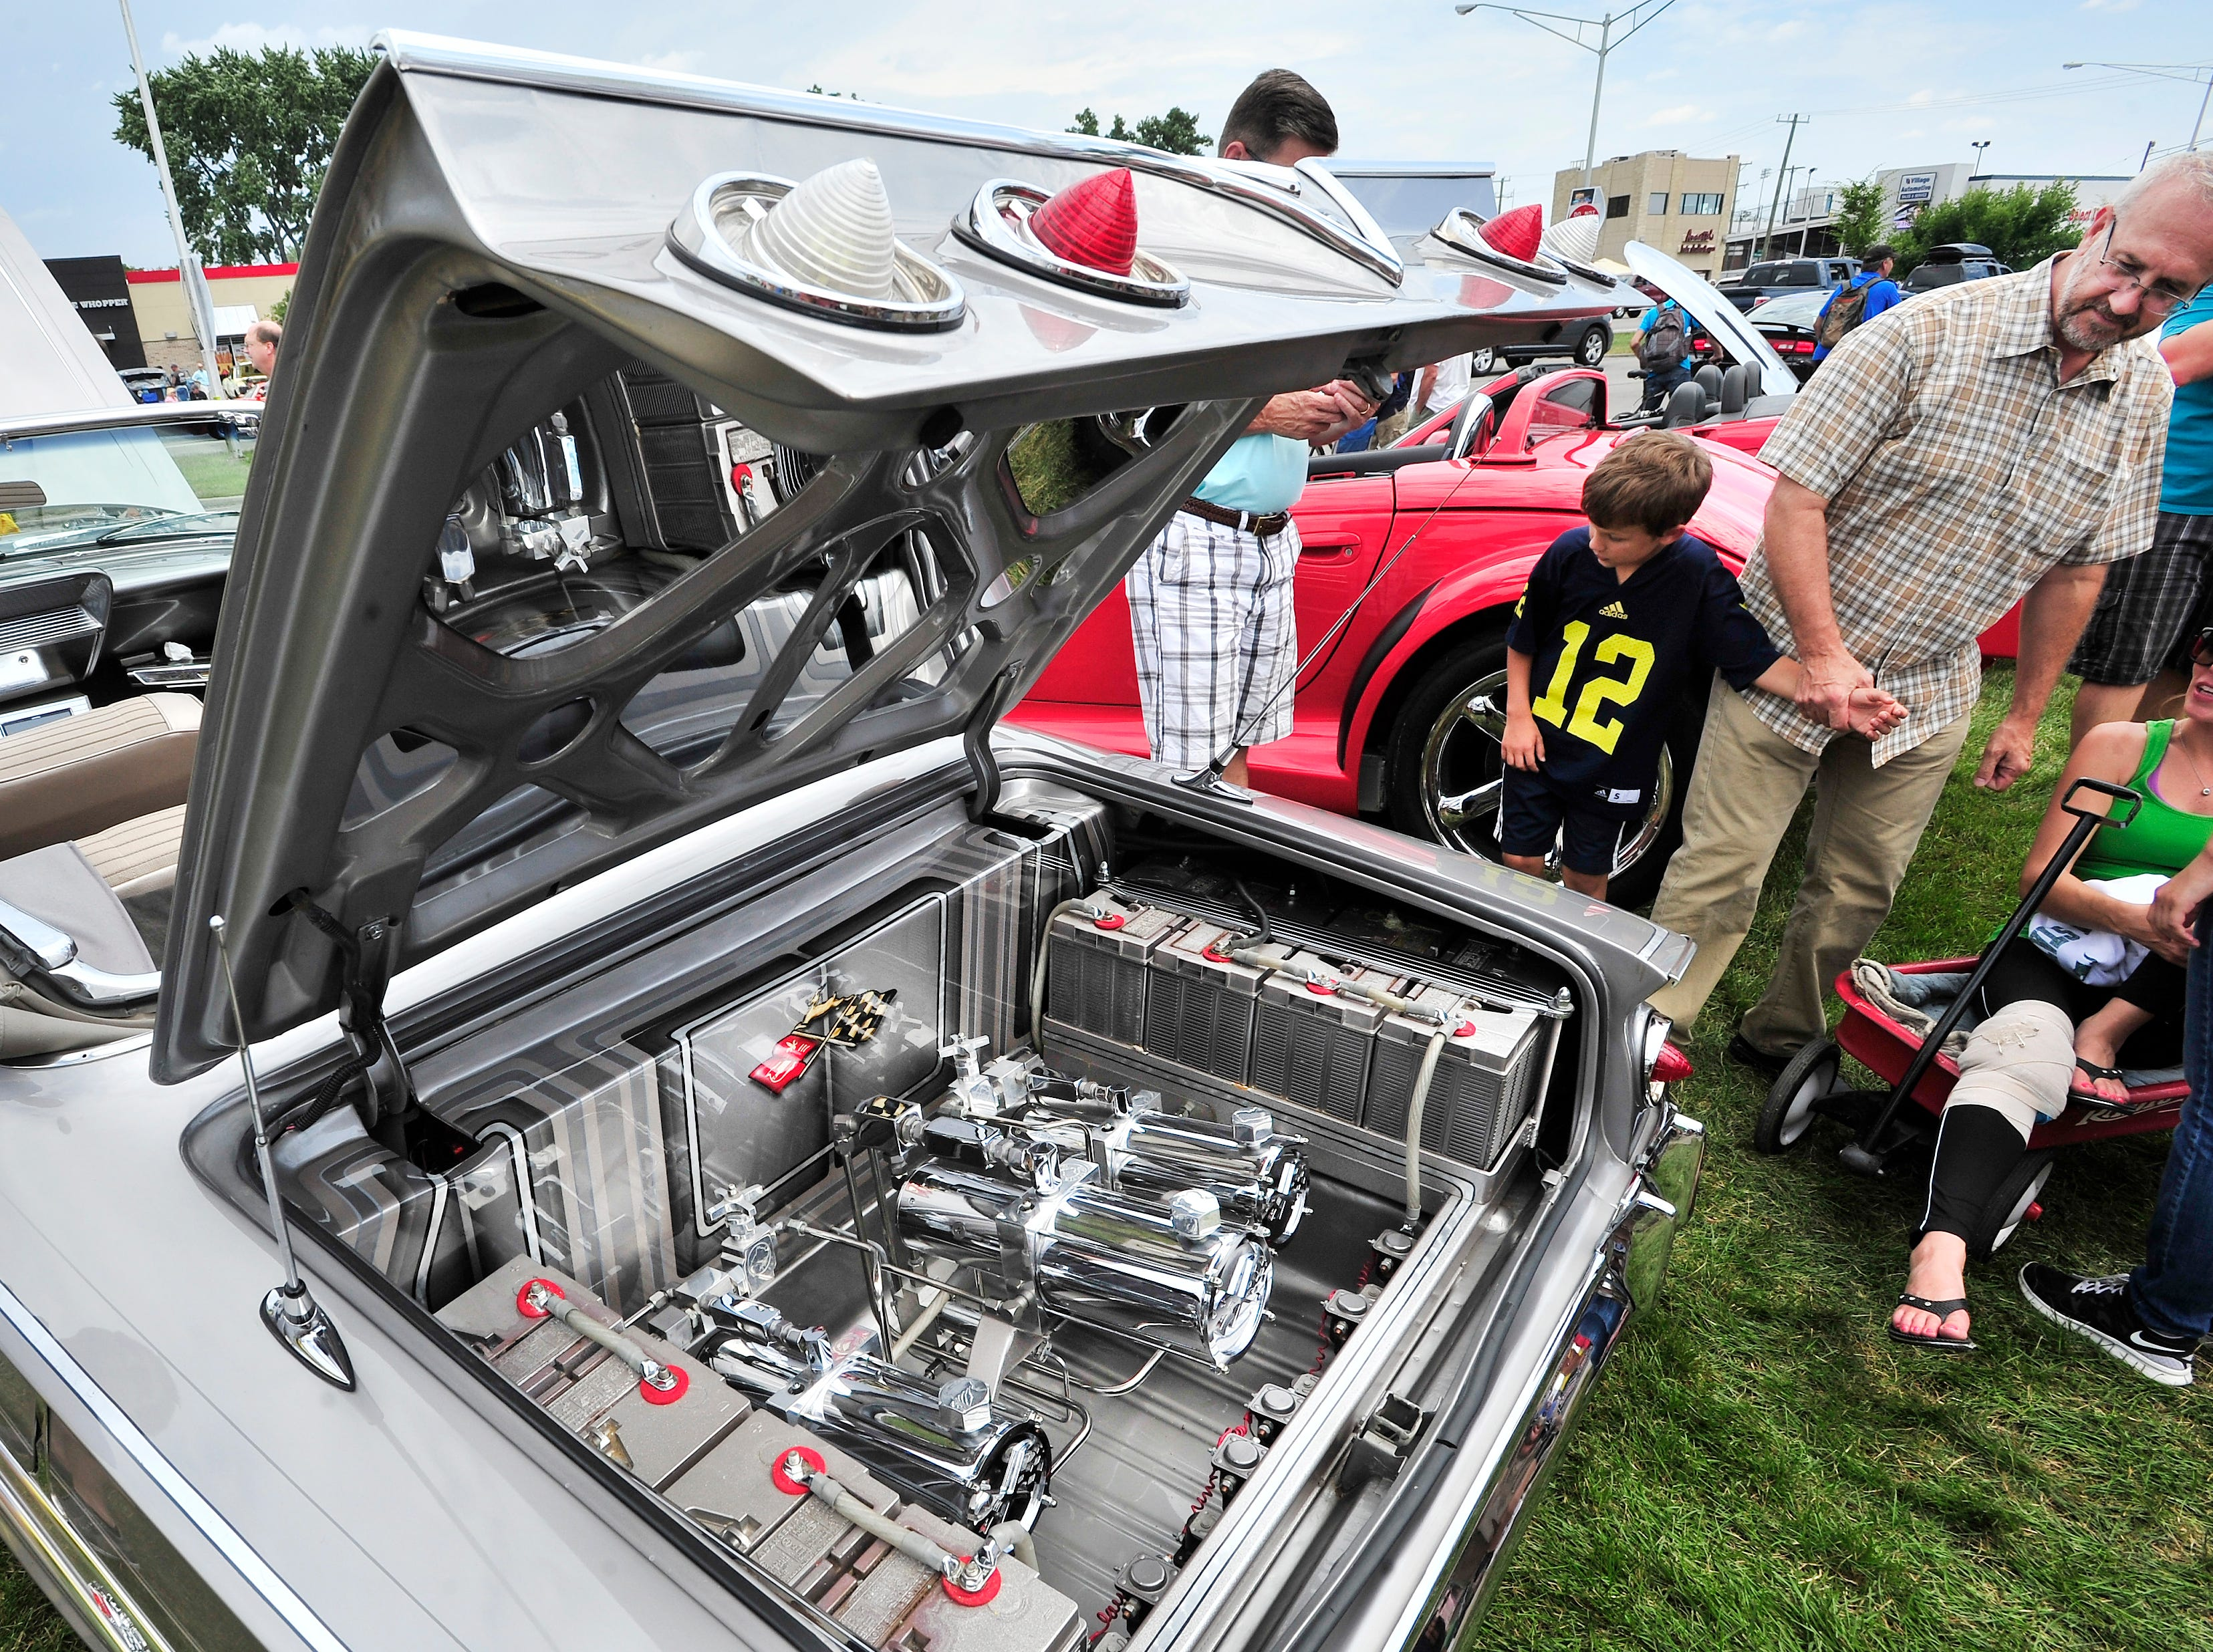 "An open trunk of an Impala with batteries and hydraulics draws stares. ""A '61 amazing Impala"" says Daniel Zaid as he looks over the spotless, chromed-out engine during the Woodward Dream Cruise in Royal Oak, Aug. 16, 2014."